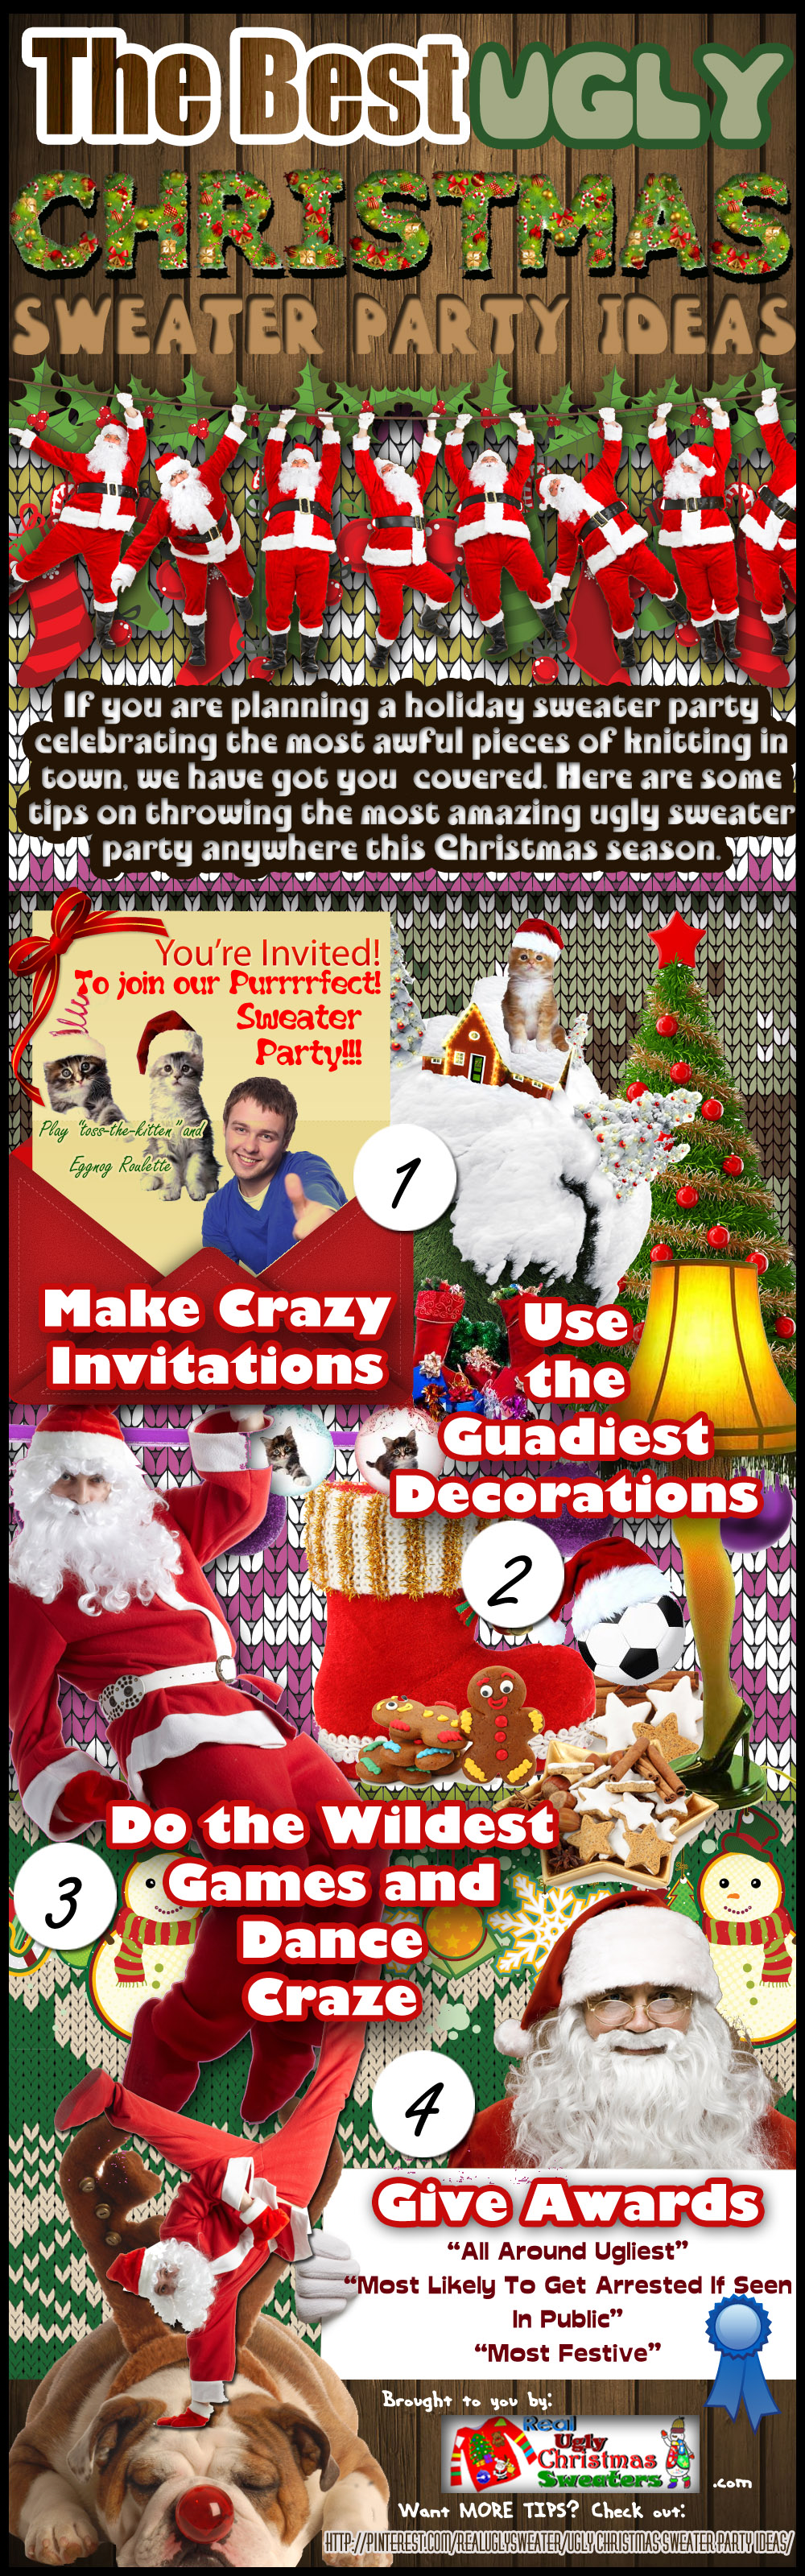 the-best-ugly-christmas-sweater-party-ideas_5263378228c5e